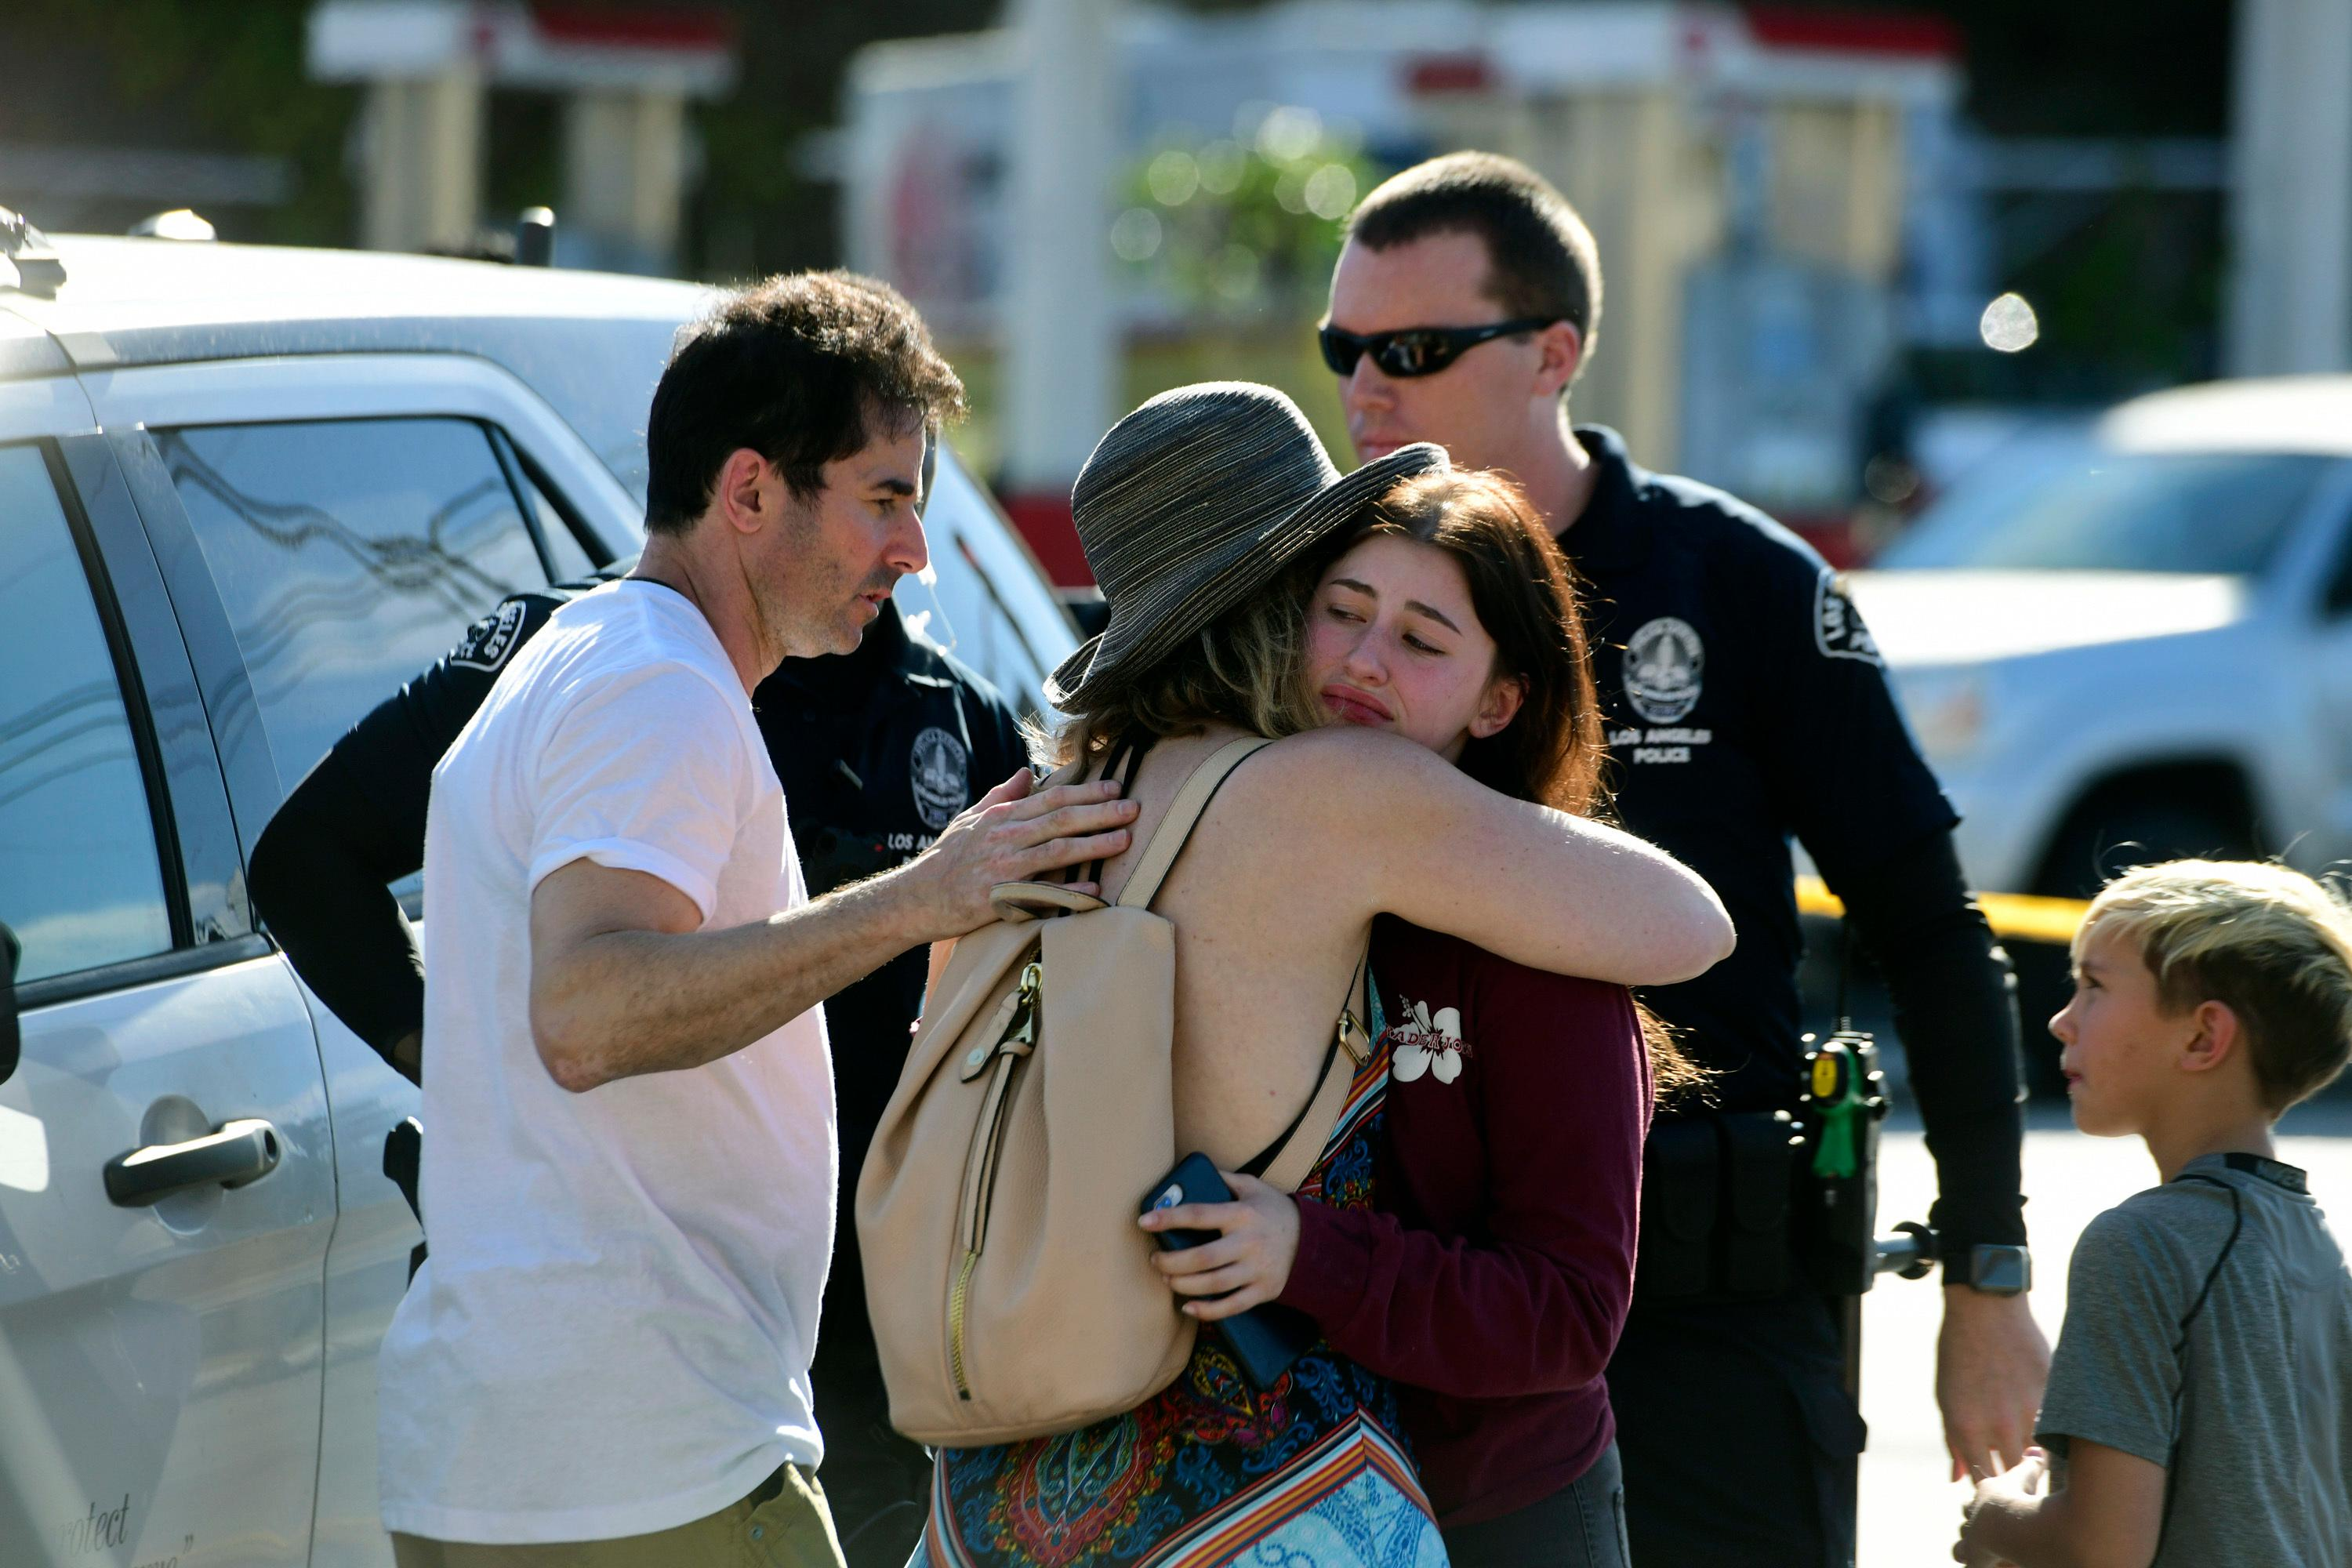 In this photo provided by Christian Monterrosa, a Trader Joe's employee, right, hugs her loved after a gunman held dozens of people hostage  inside a Trader Joe's supermarket before handcuffing himself and surrendering to police, Saturday, July 21, 2018, in Los Angeles.  (Christian Monterrosa via AP)